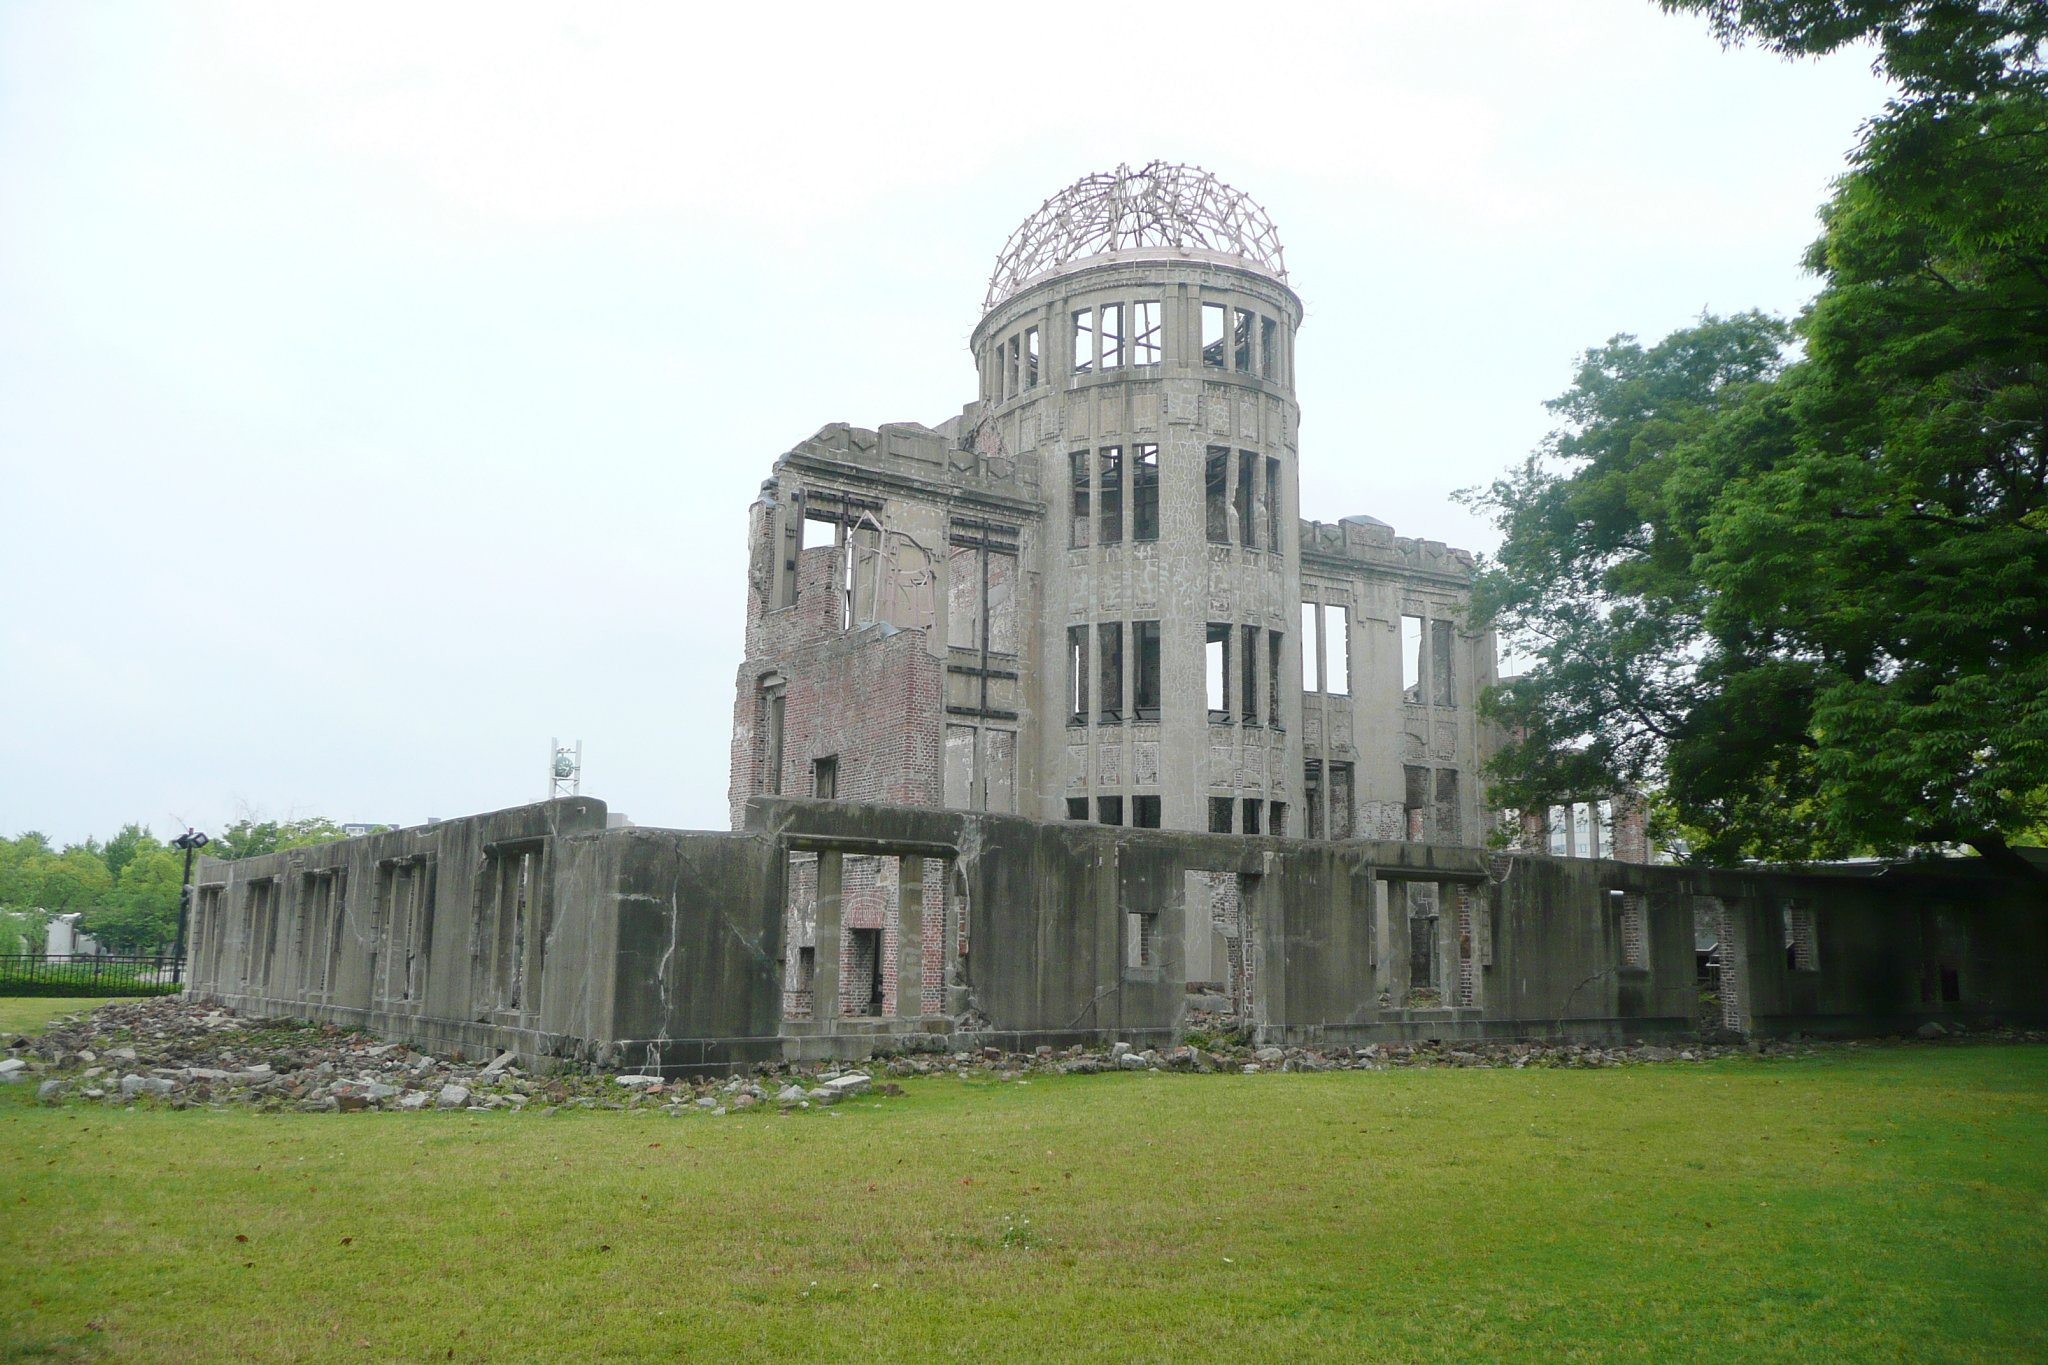 hiroshima bombing essay Hiroshima study guide contains a biography of john hersey, literature essays, quiz questions, major themes, characters, and a full summary and analysis.